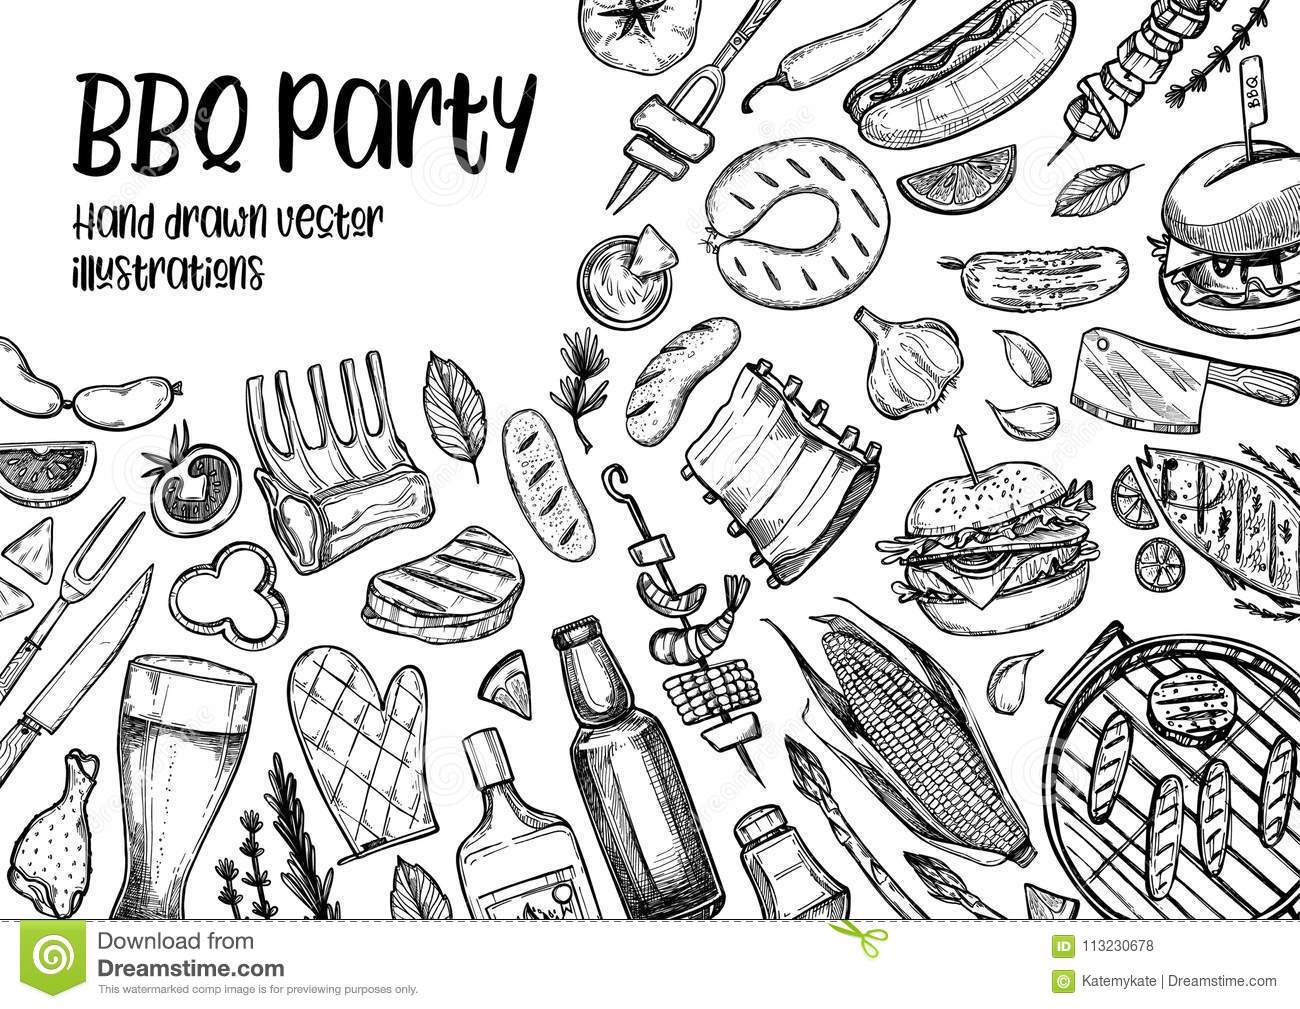 Hand drawn vector illustrations. BBQ collection. Barbeque design